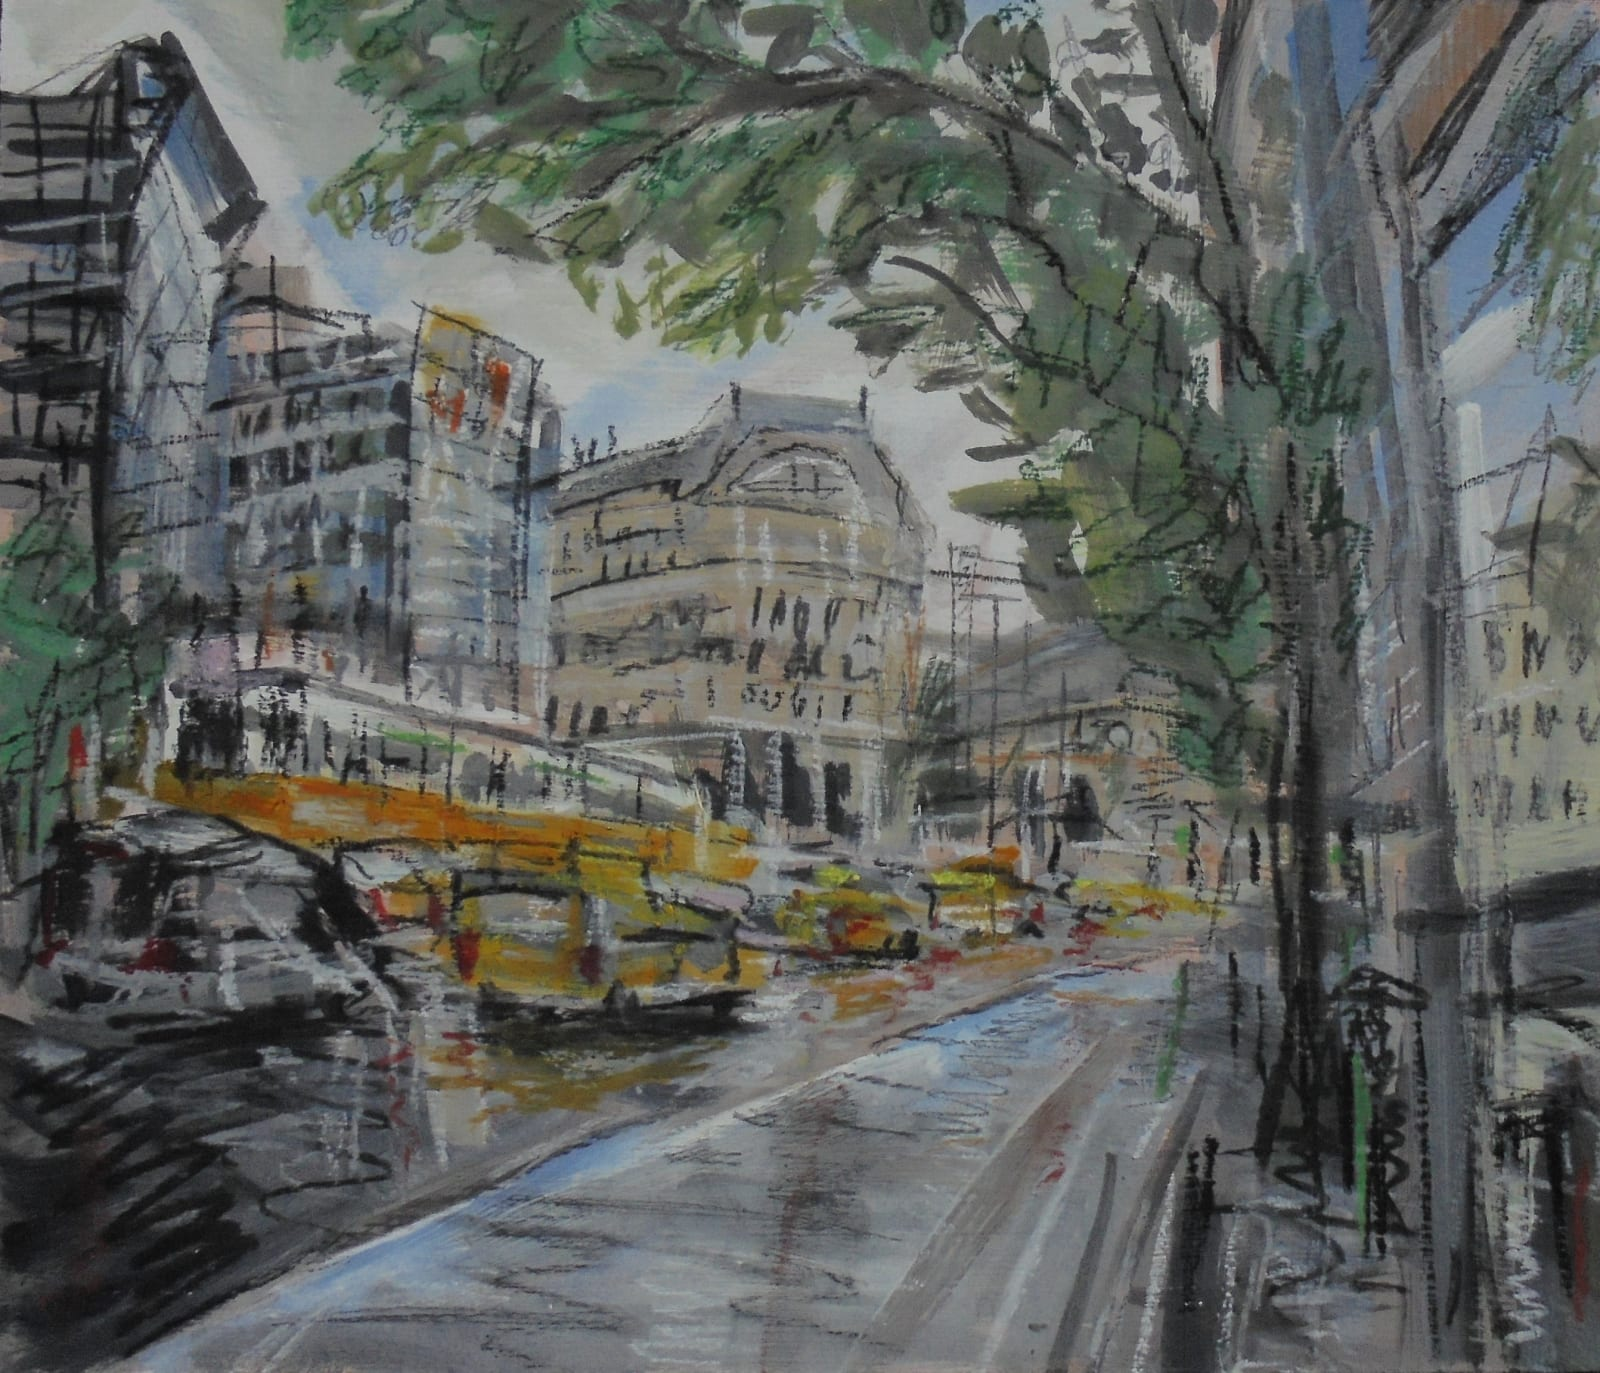 Matthew Thompson, Taxis and Trams, Budapest